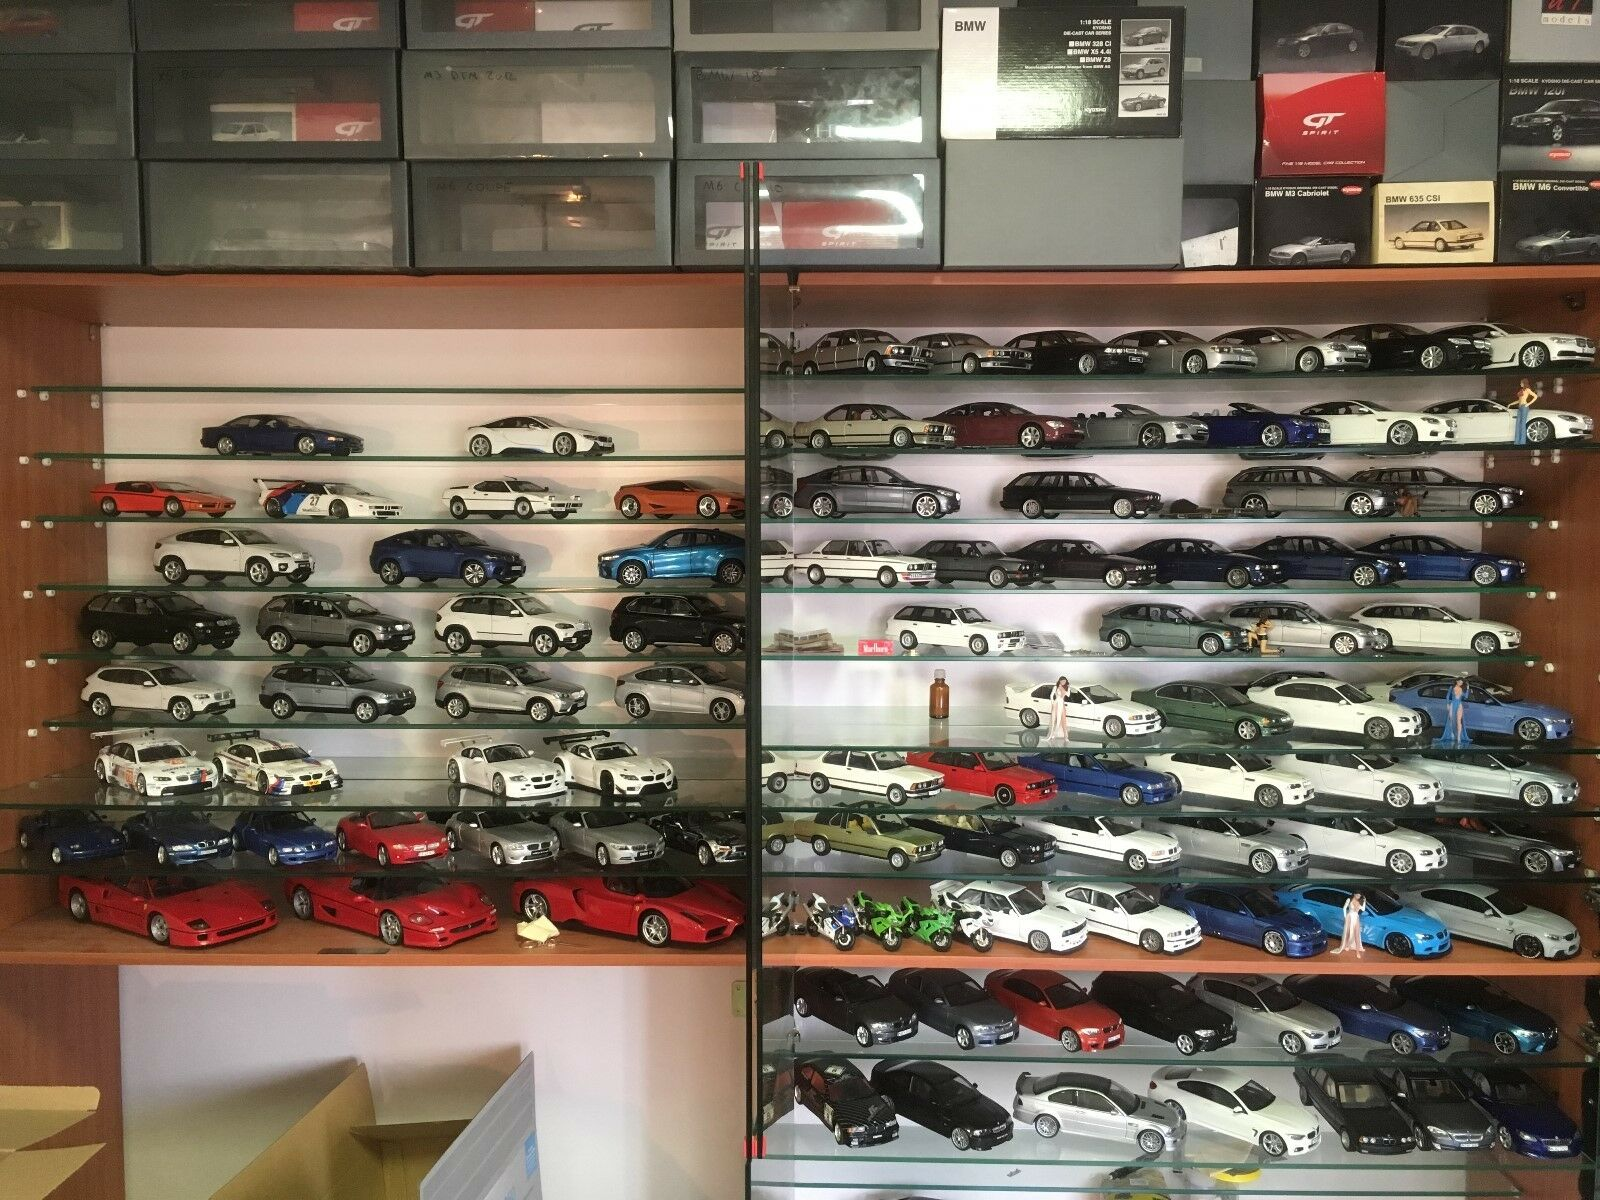 Diecast 1 18 scale, FULL BMW BMW BMW collection 100 models a042f0